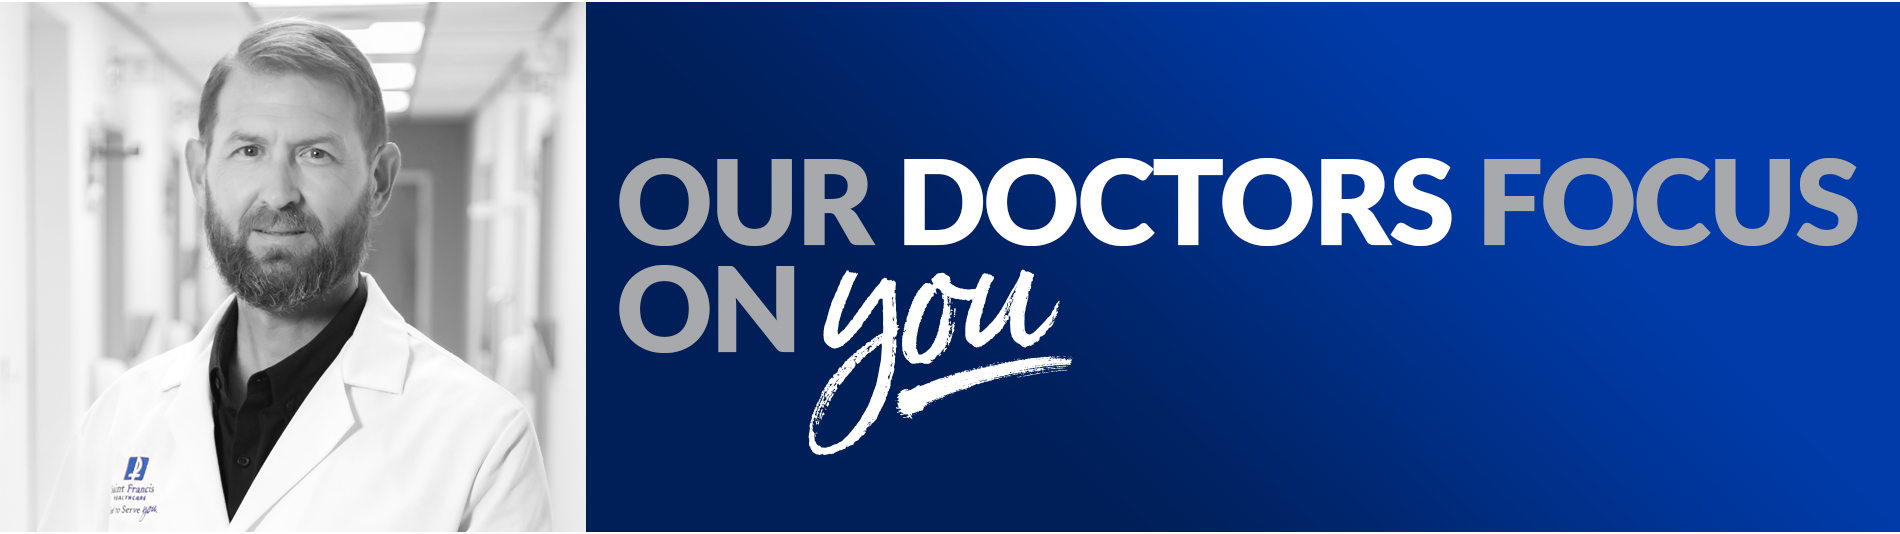 Our doctors focus on YOU!